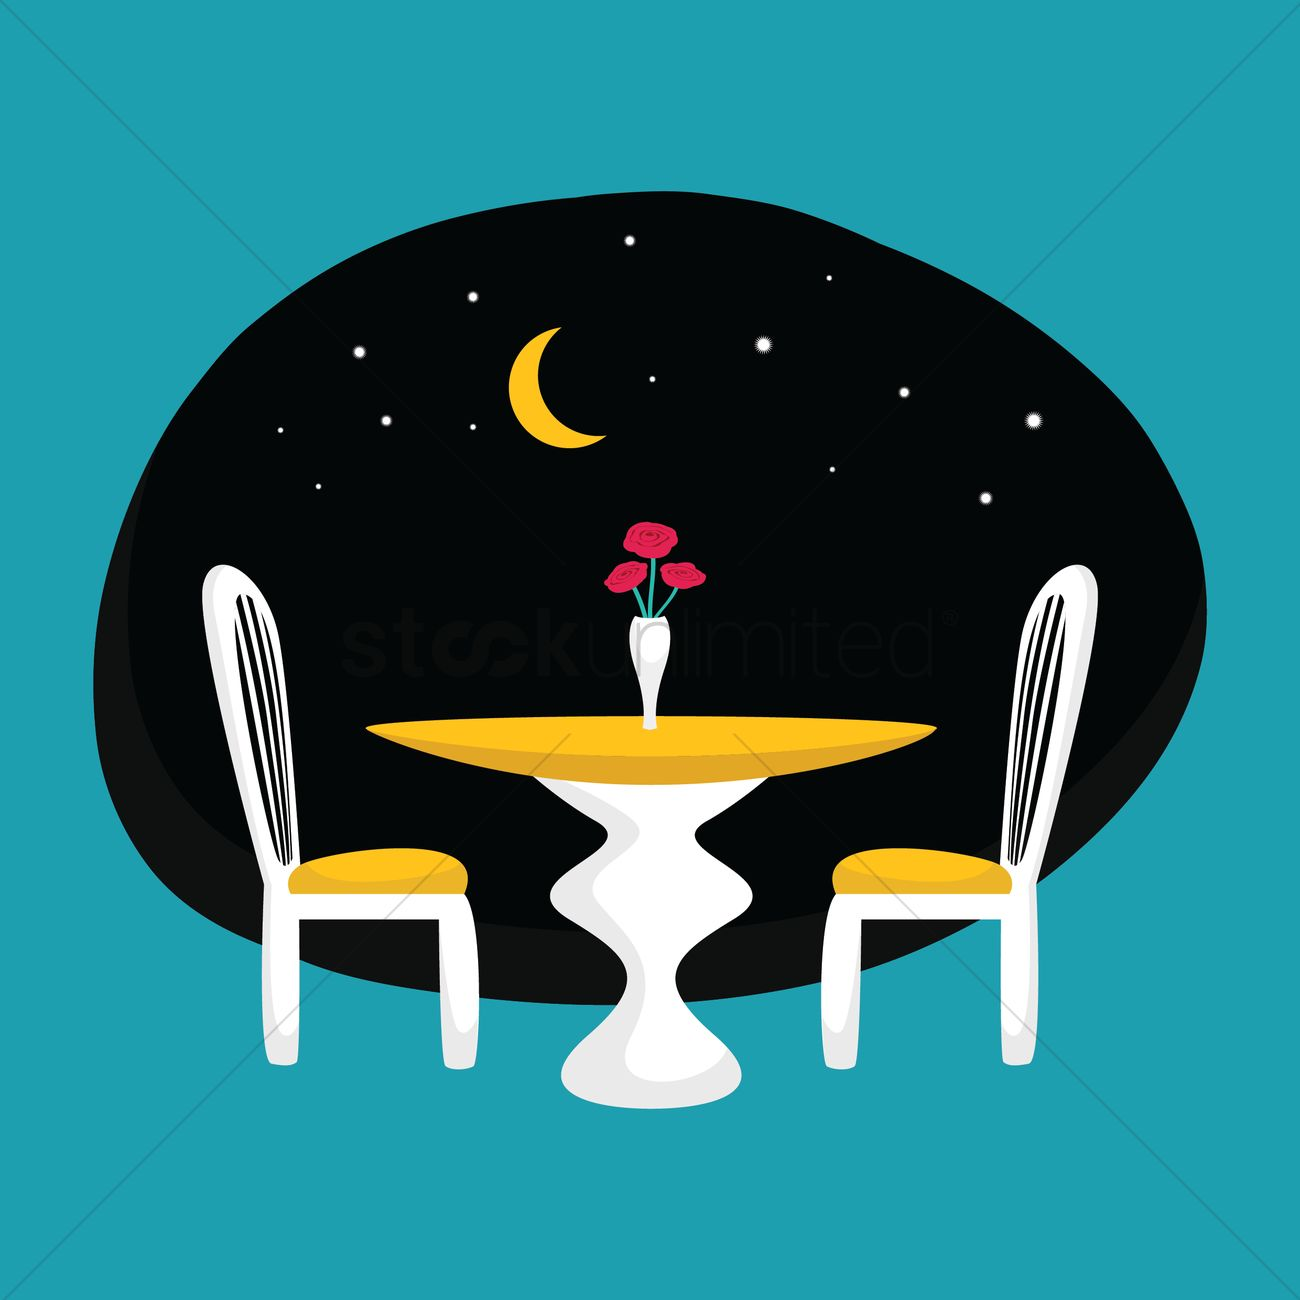 Candlelight Dinner Vector Image 1274582 Stockunlimited